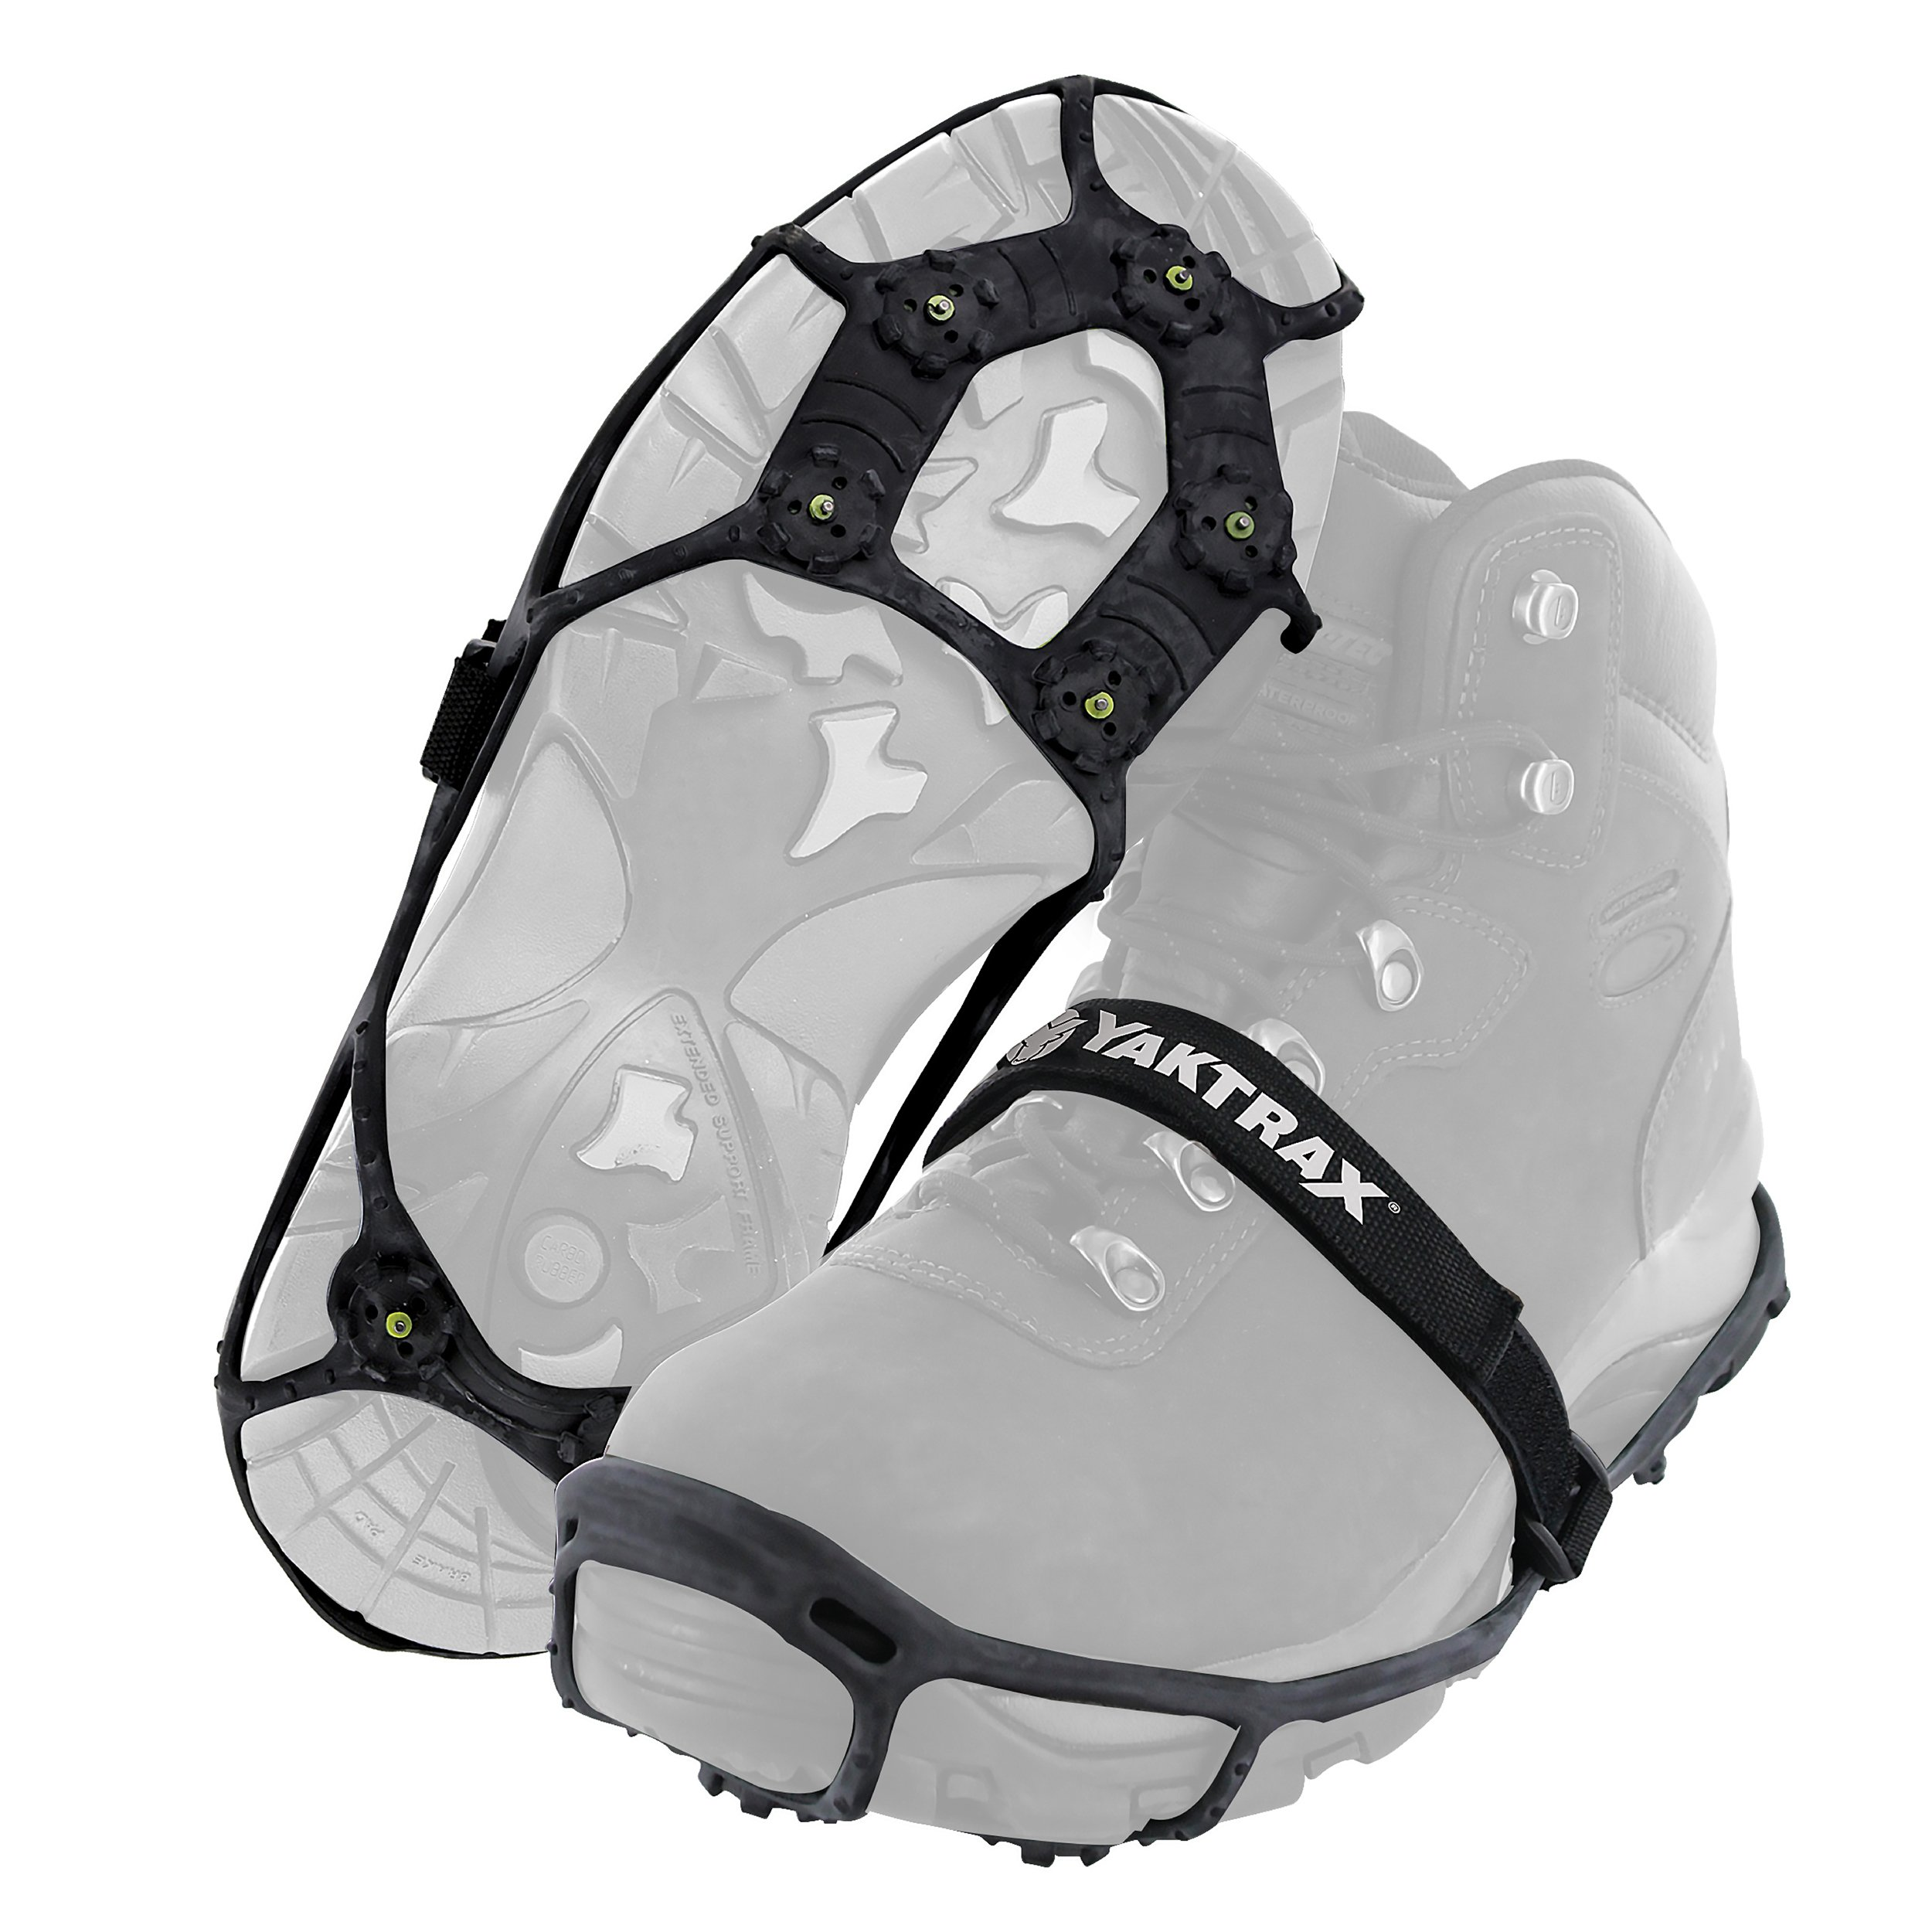 Yaktrax Spikes for Walking on Ice and Snow (Pair), Large/X-Large